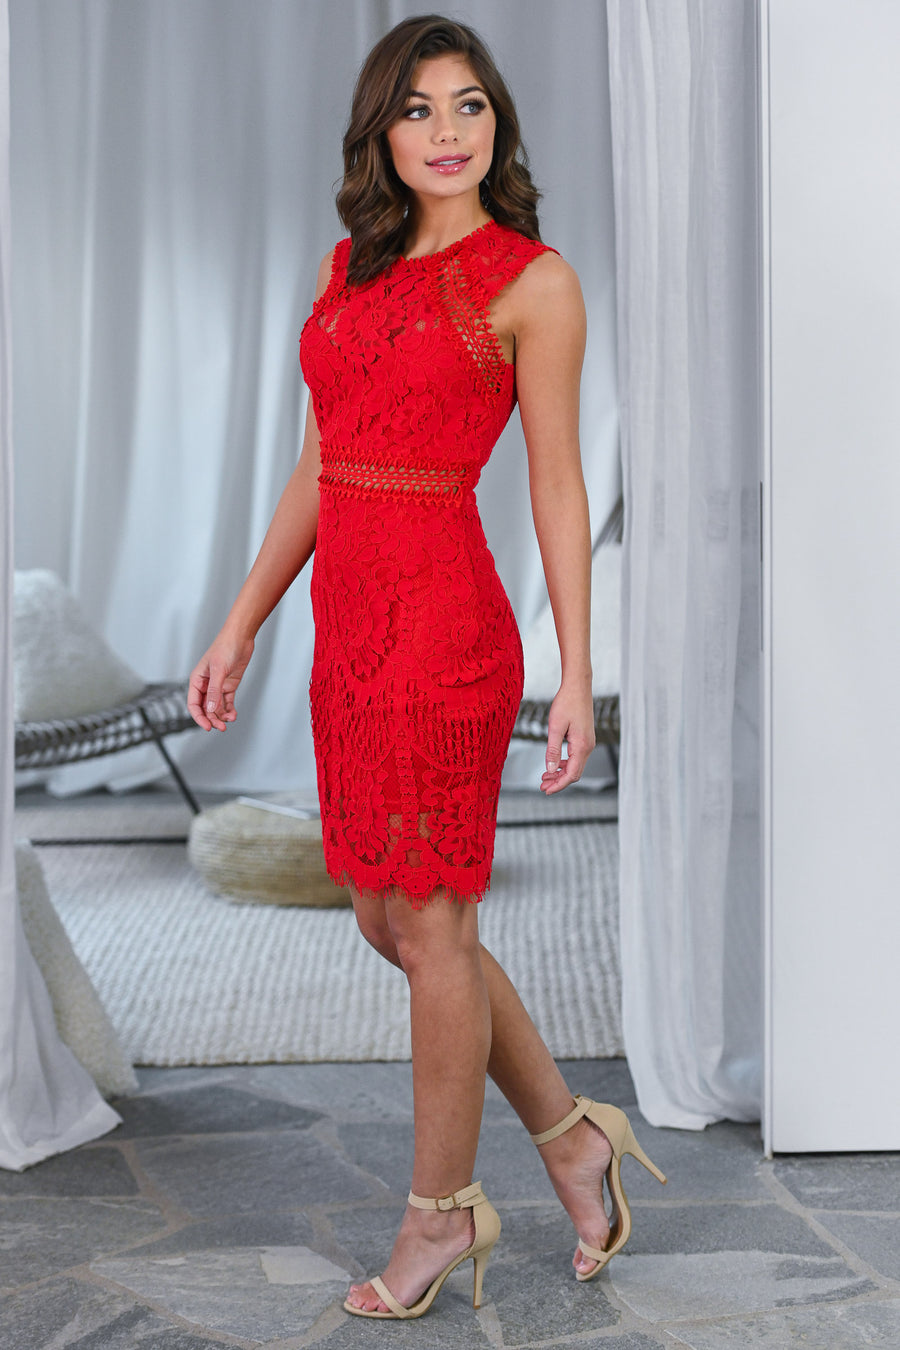 Real Life Love Story Dress - Red women's lace crochet cocktail dress, Closet Candy Boutique 1